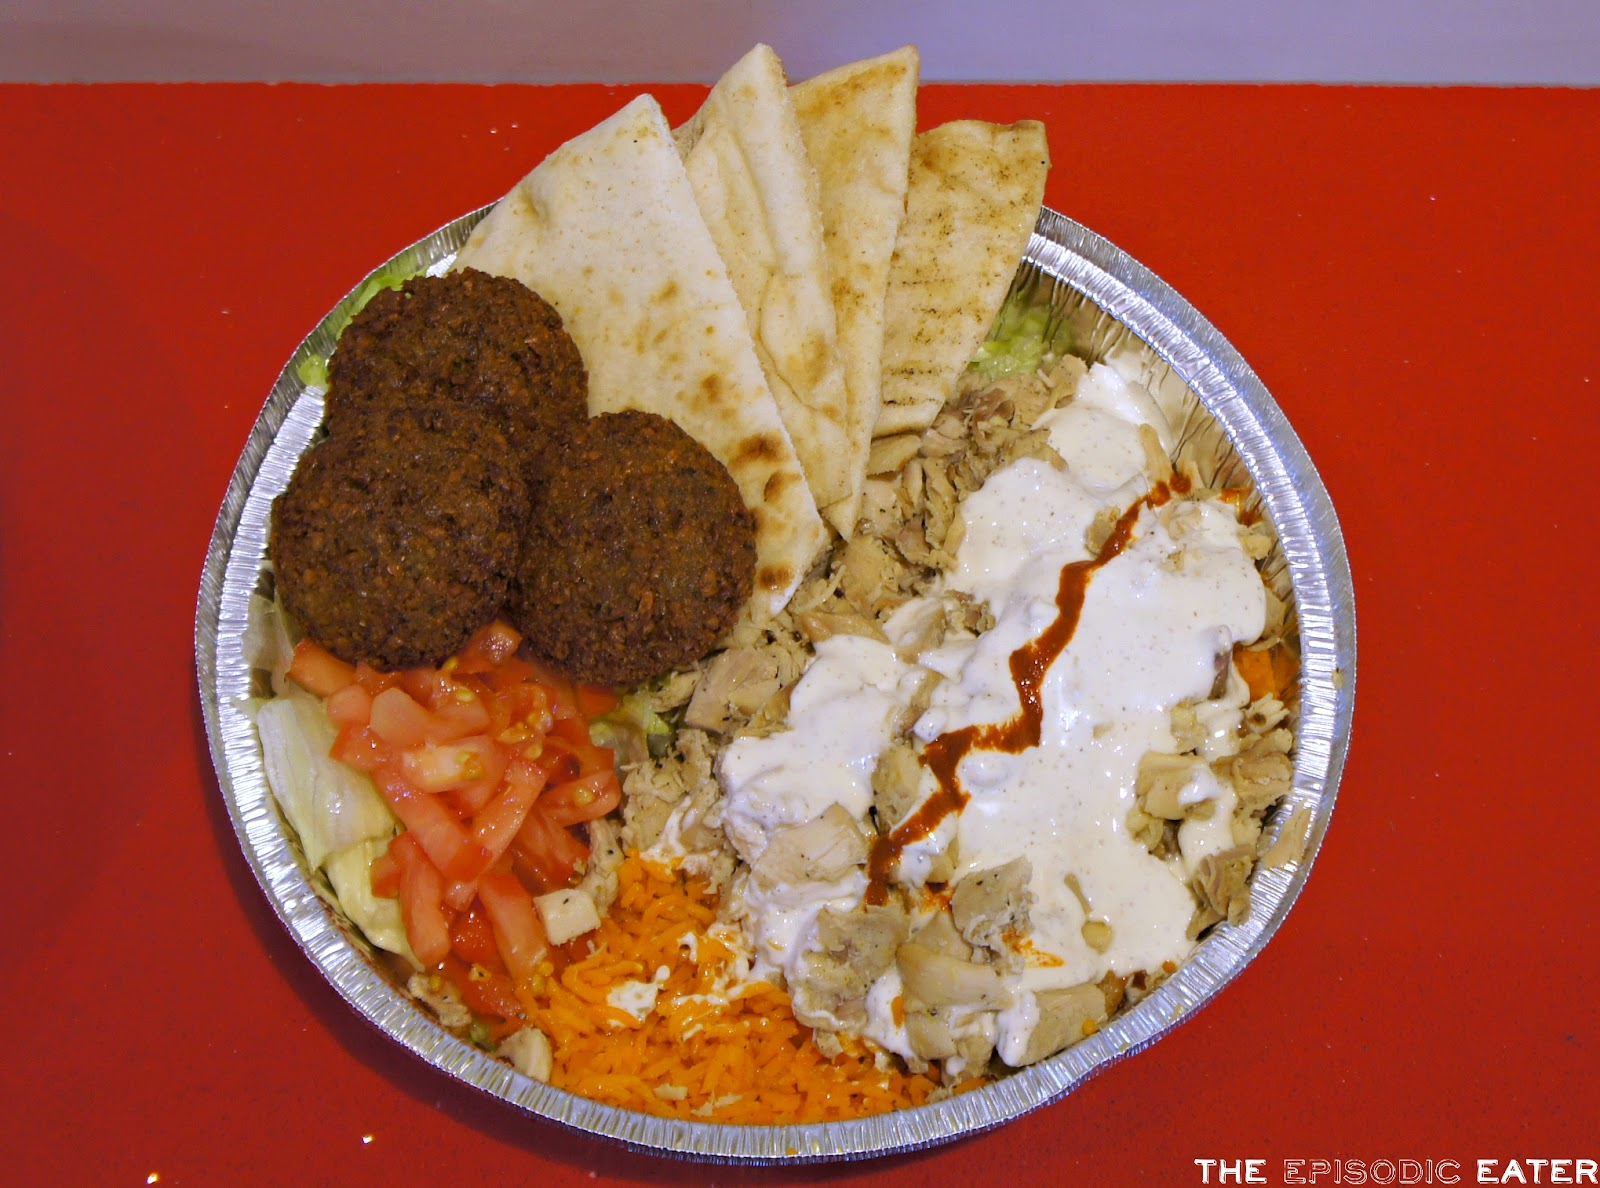 Cucina Italian Restaurant Halal The Halal Guys Costa Mesa Ca Grand Opening The